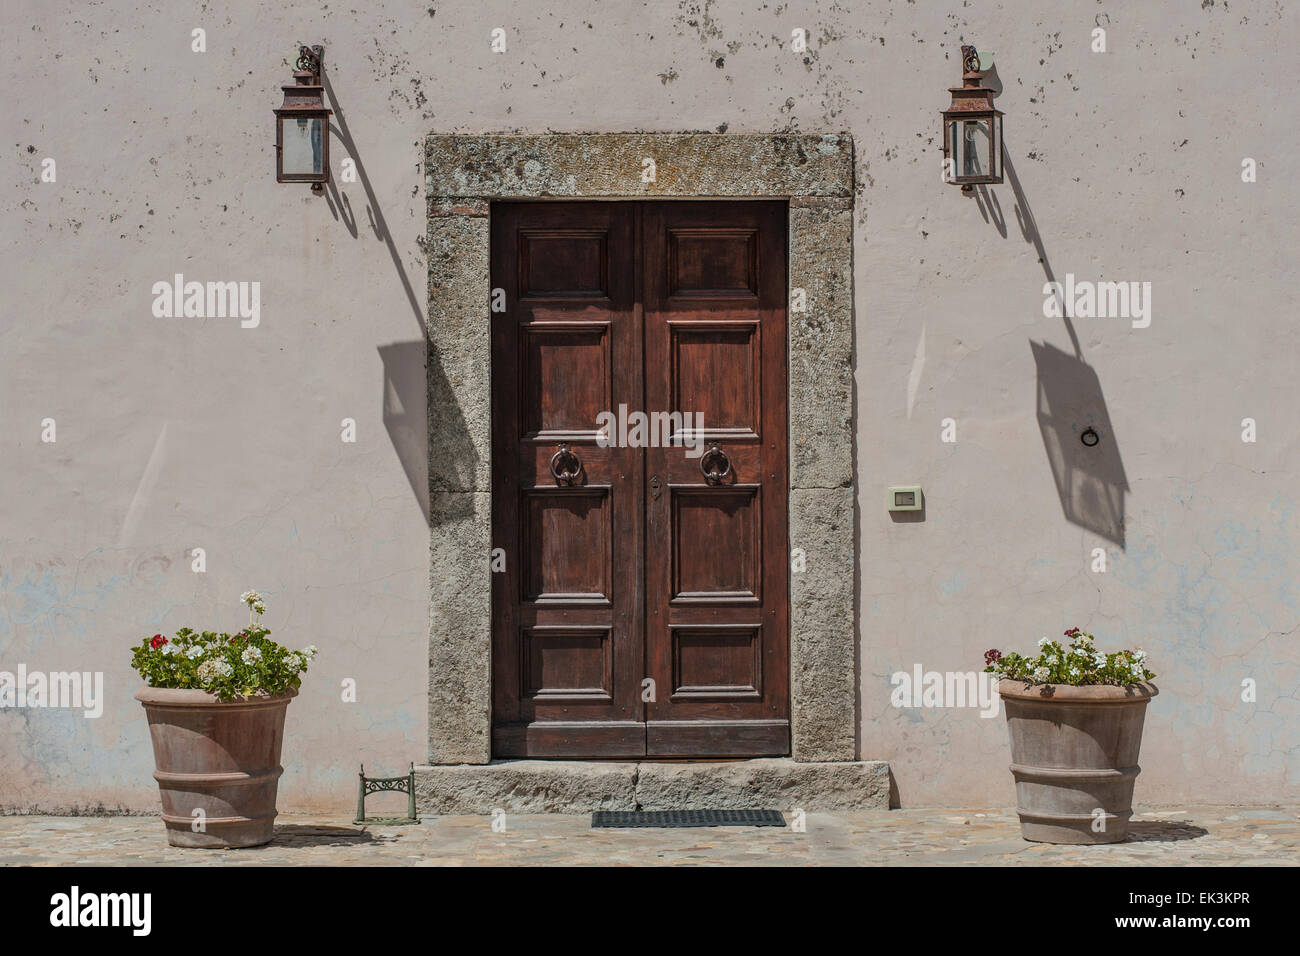 A Big Heavy Front Door On An Italian House With The Shadow Of Lights And  Pot Planters With Flowers